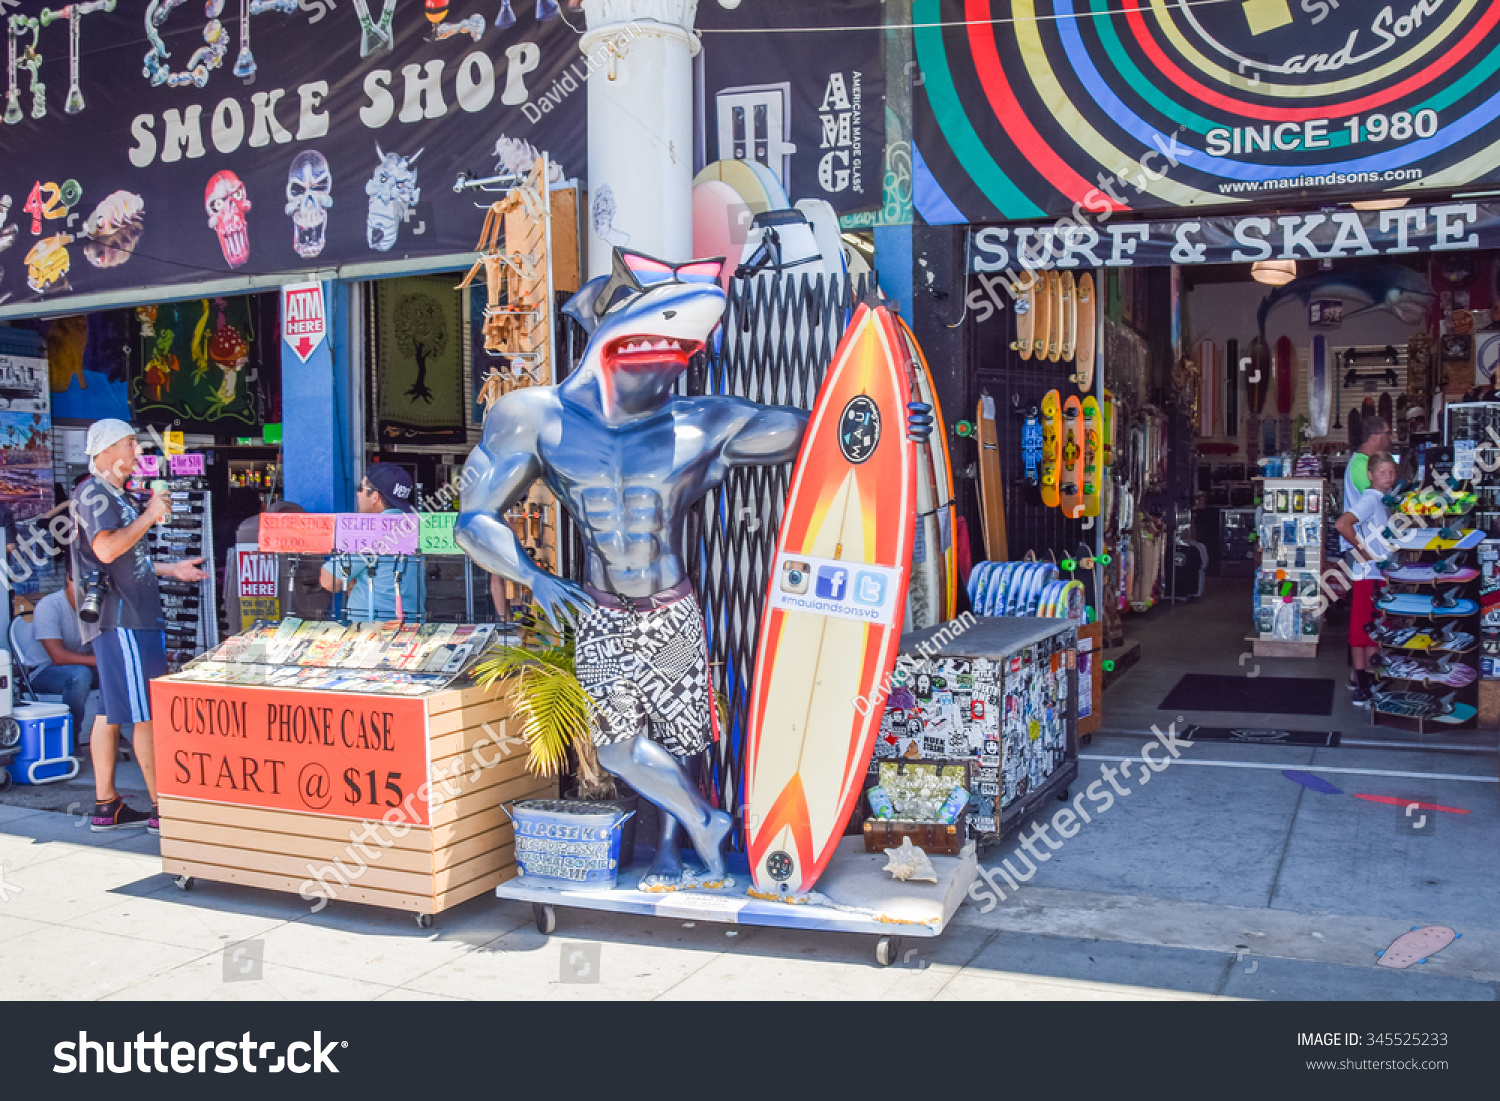 Venice, California, USA - July 12, 2015: Colorful storefronts, including a body building  land shark with surfboard, a smoke shop and a surf shop, line the boardwalk in Venice Beach, California, USA.